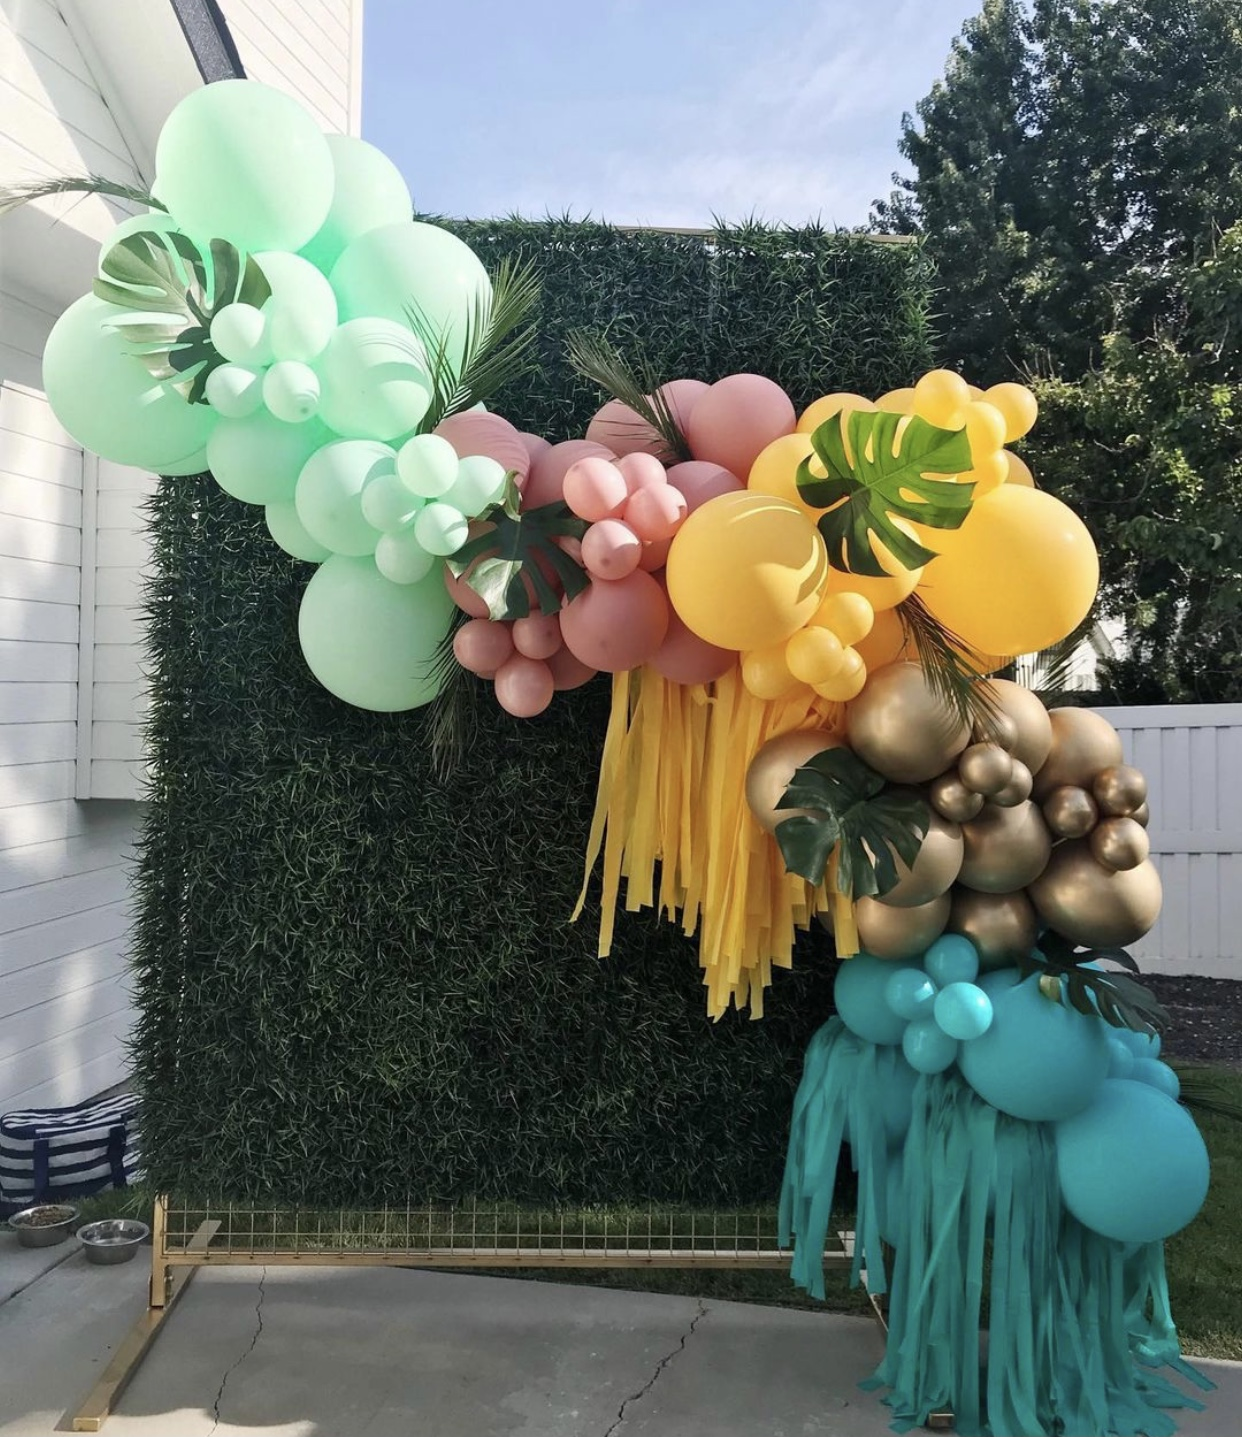 12 foot Standard garland with added greenery and fringe